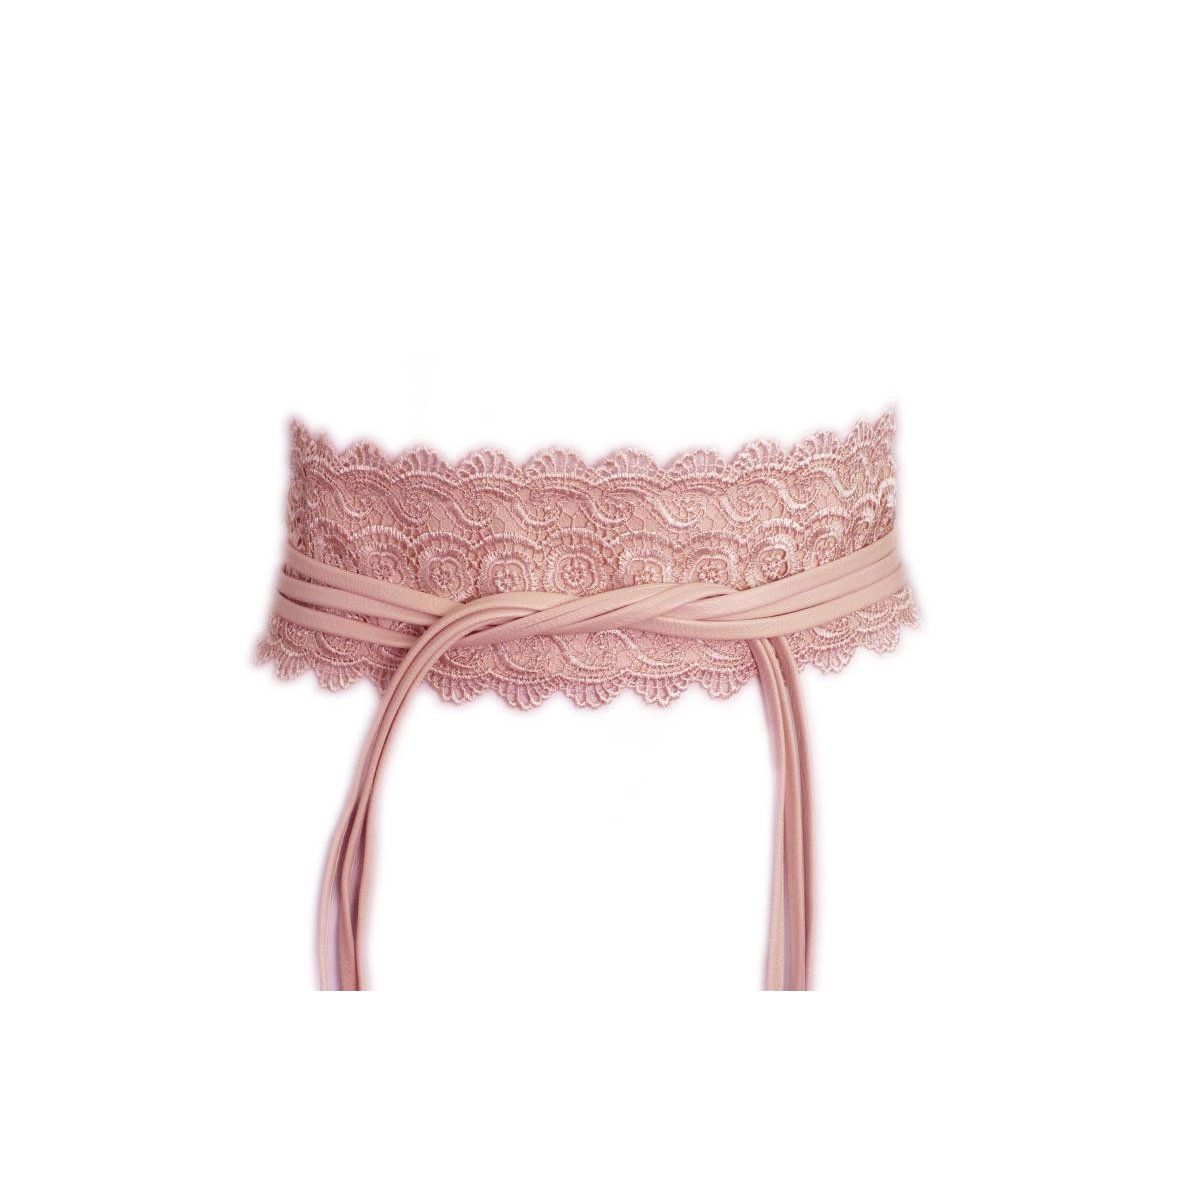 87fc811e9f9 Laciteinterdite - Ceinture large dentelle à nouer rose  Amazon.fr  High-tech